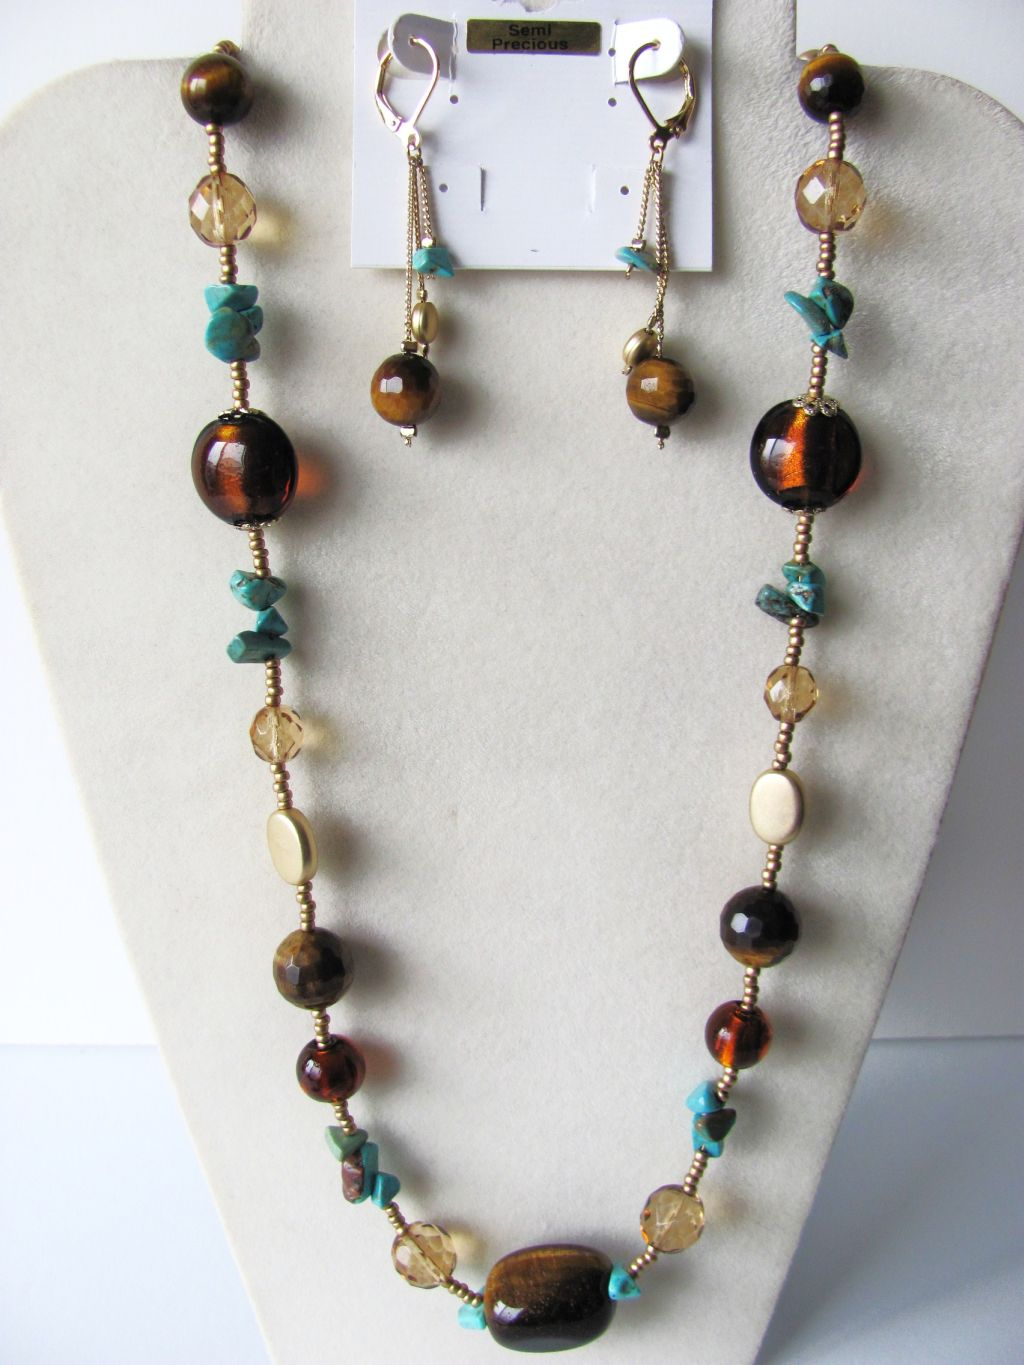 Tiger Eye Turquoise Semi-Precious Stones Necklace Earrings Jewelry Set